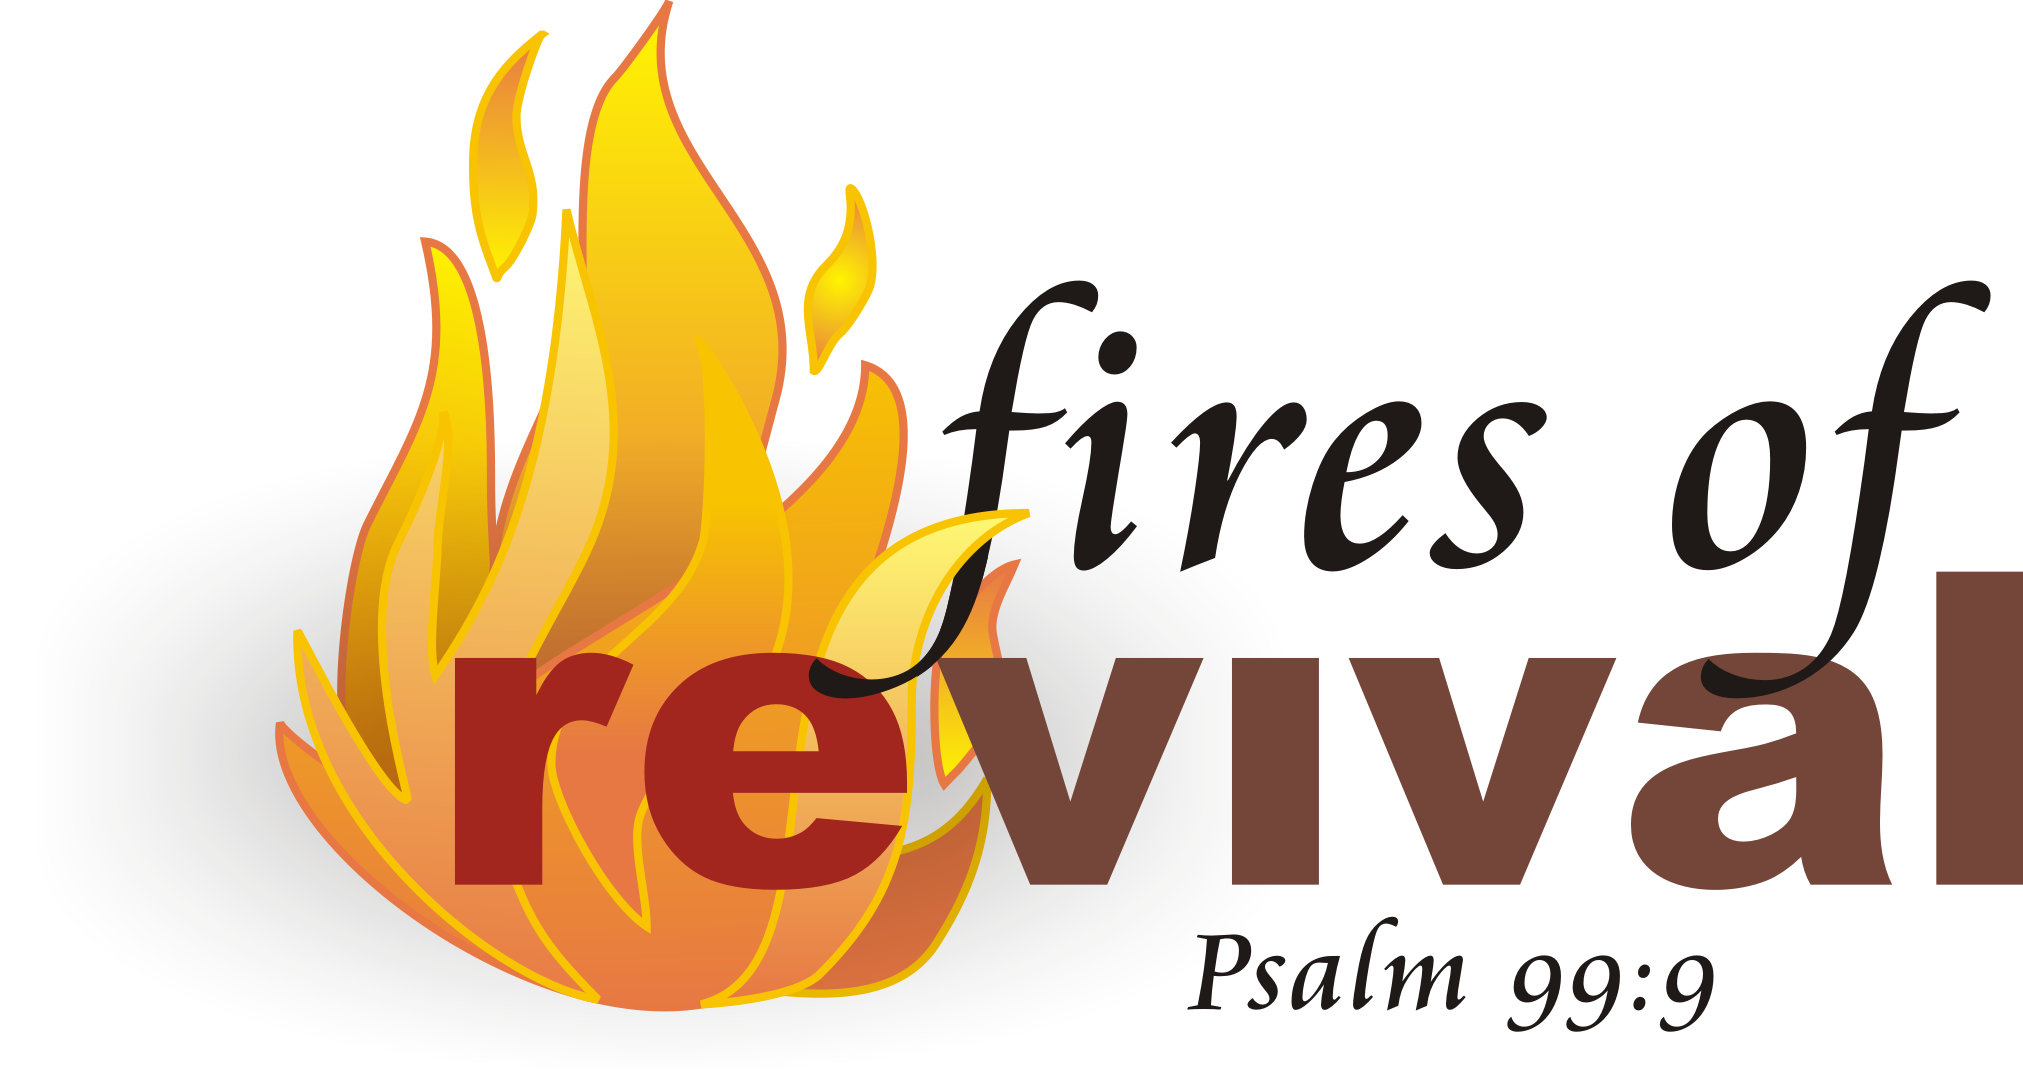 Annual youth revival clipart clipart images gallery for free.